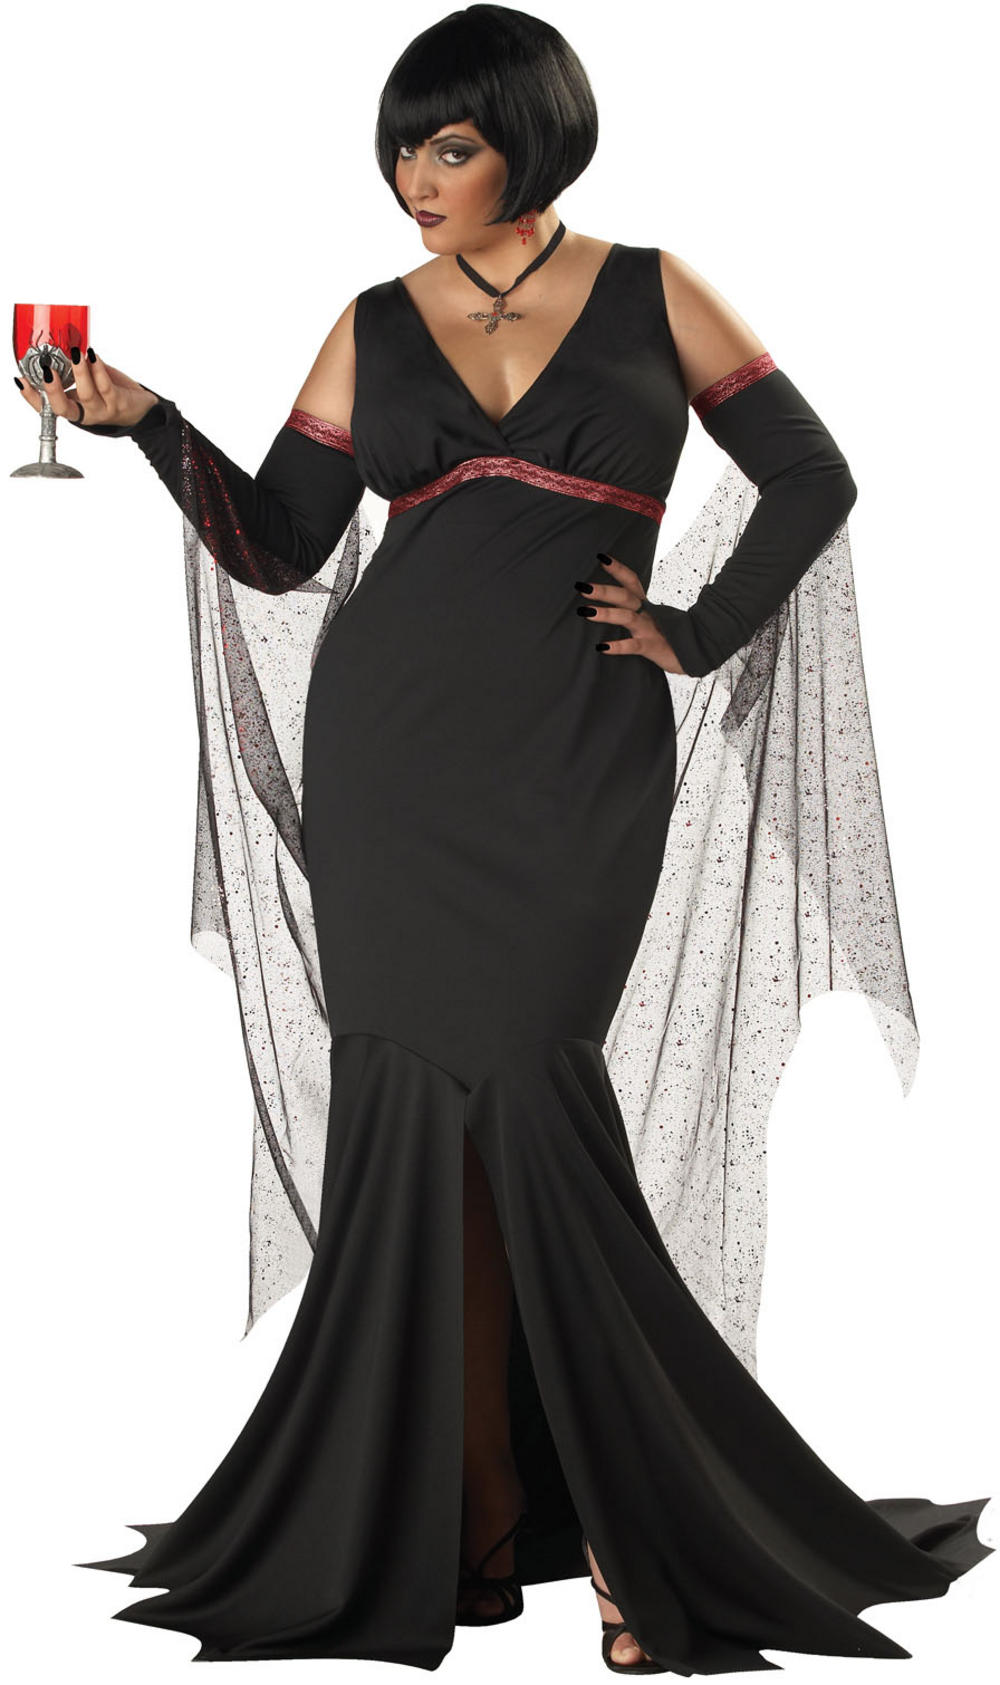 Plus Size Immortal Seductress Costume